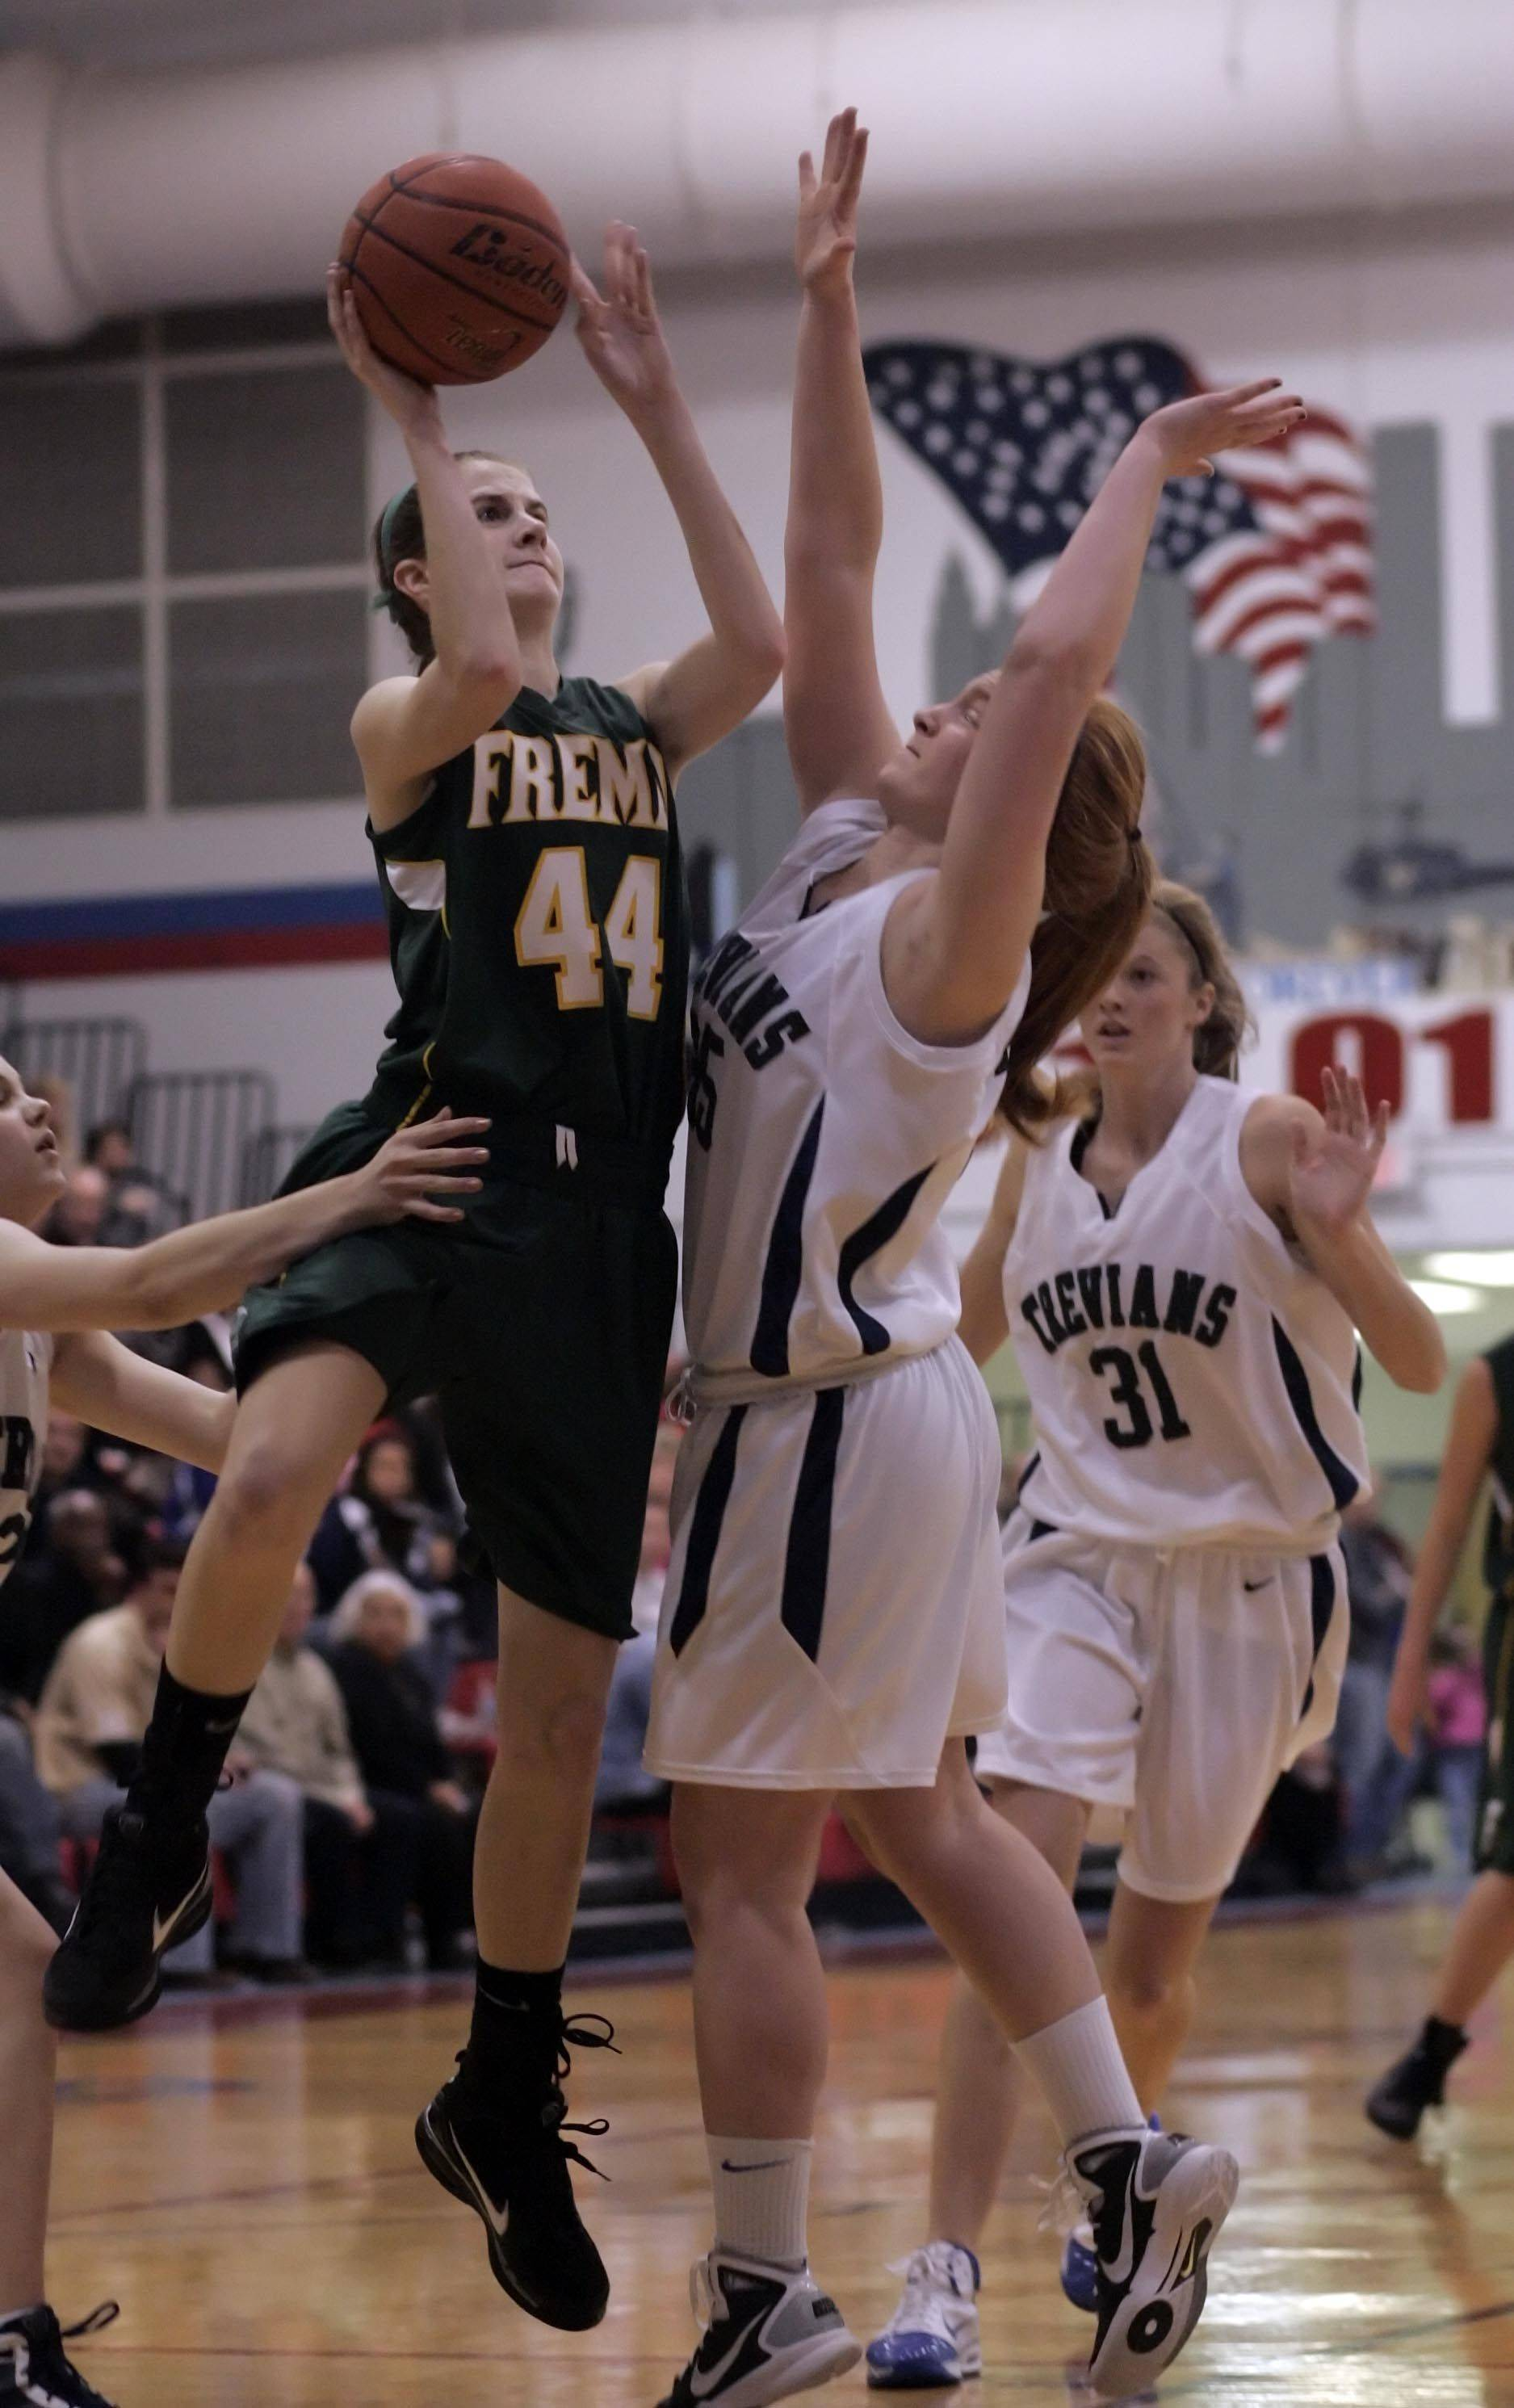 Fremd senior Jessi Wiedemann (44) will be taking the ball to the basket for Valparaiso University after making a verbal commitment to the school.